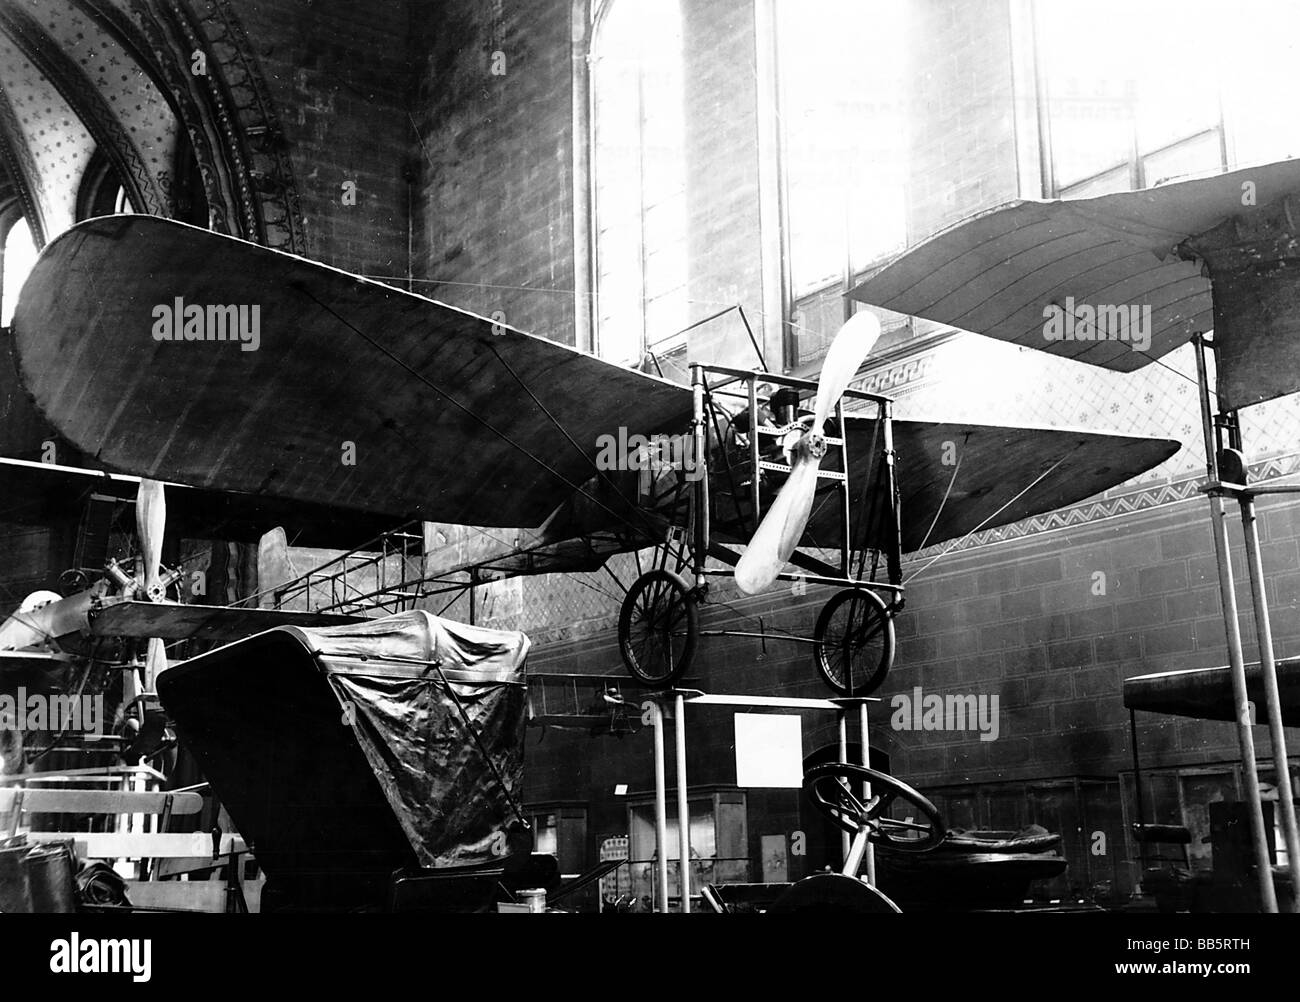 Bleriot, Louis, 1.7.1872 - 1.8.1936, French pilot pioneer, his self constructed aircraft, at exhibition, Paris, - Stock Image